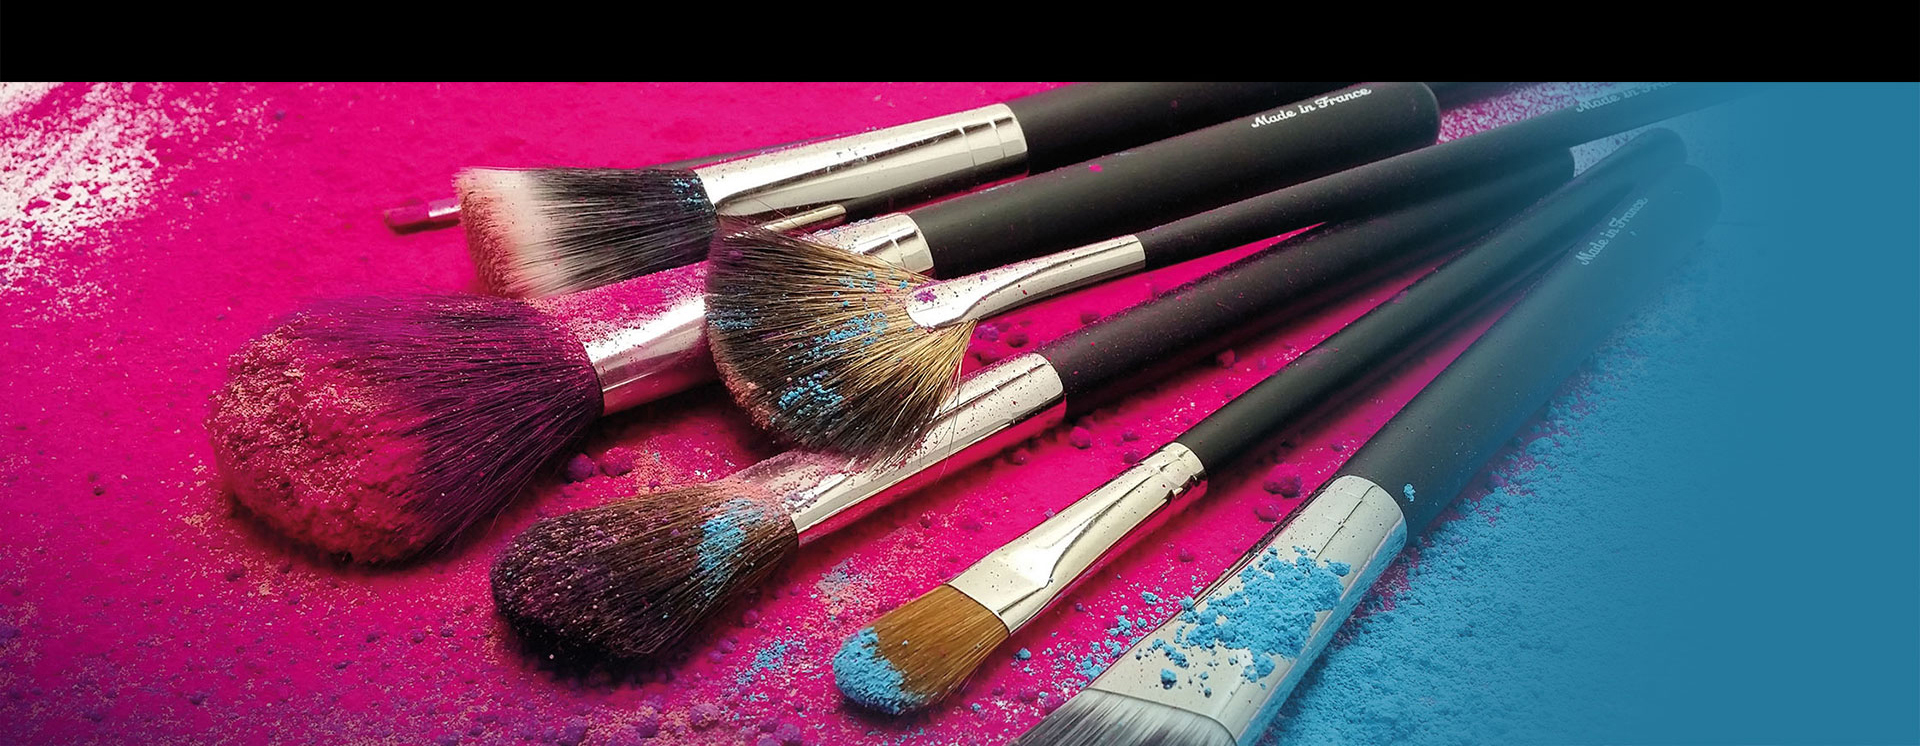 Raphael make-up brushes